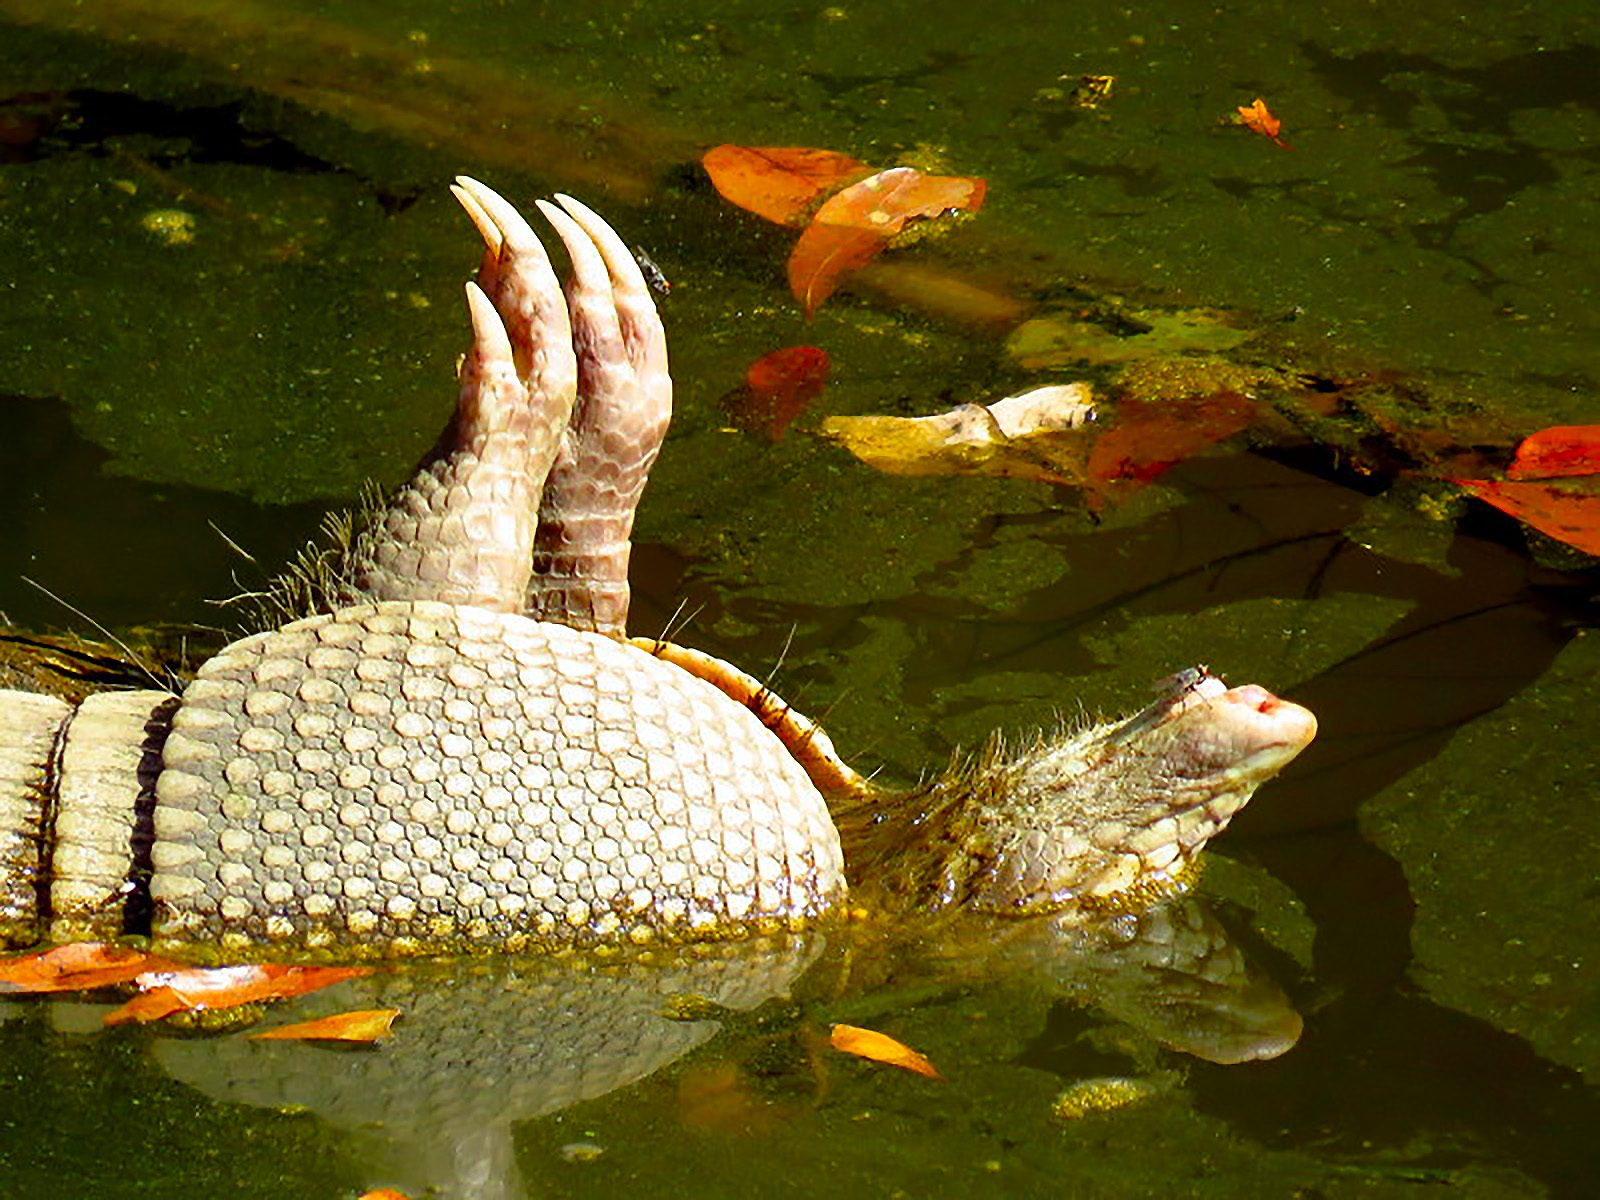 Dead Armadillo, Belly-up in the Lake